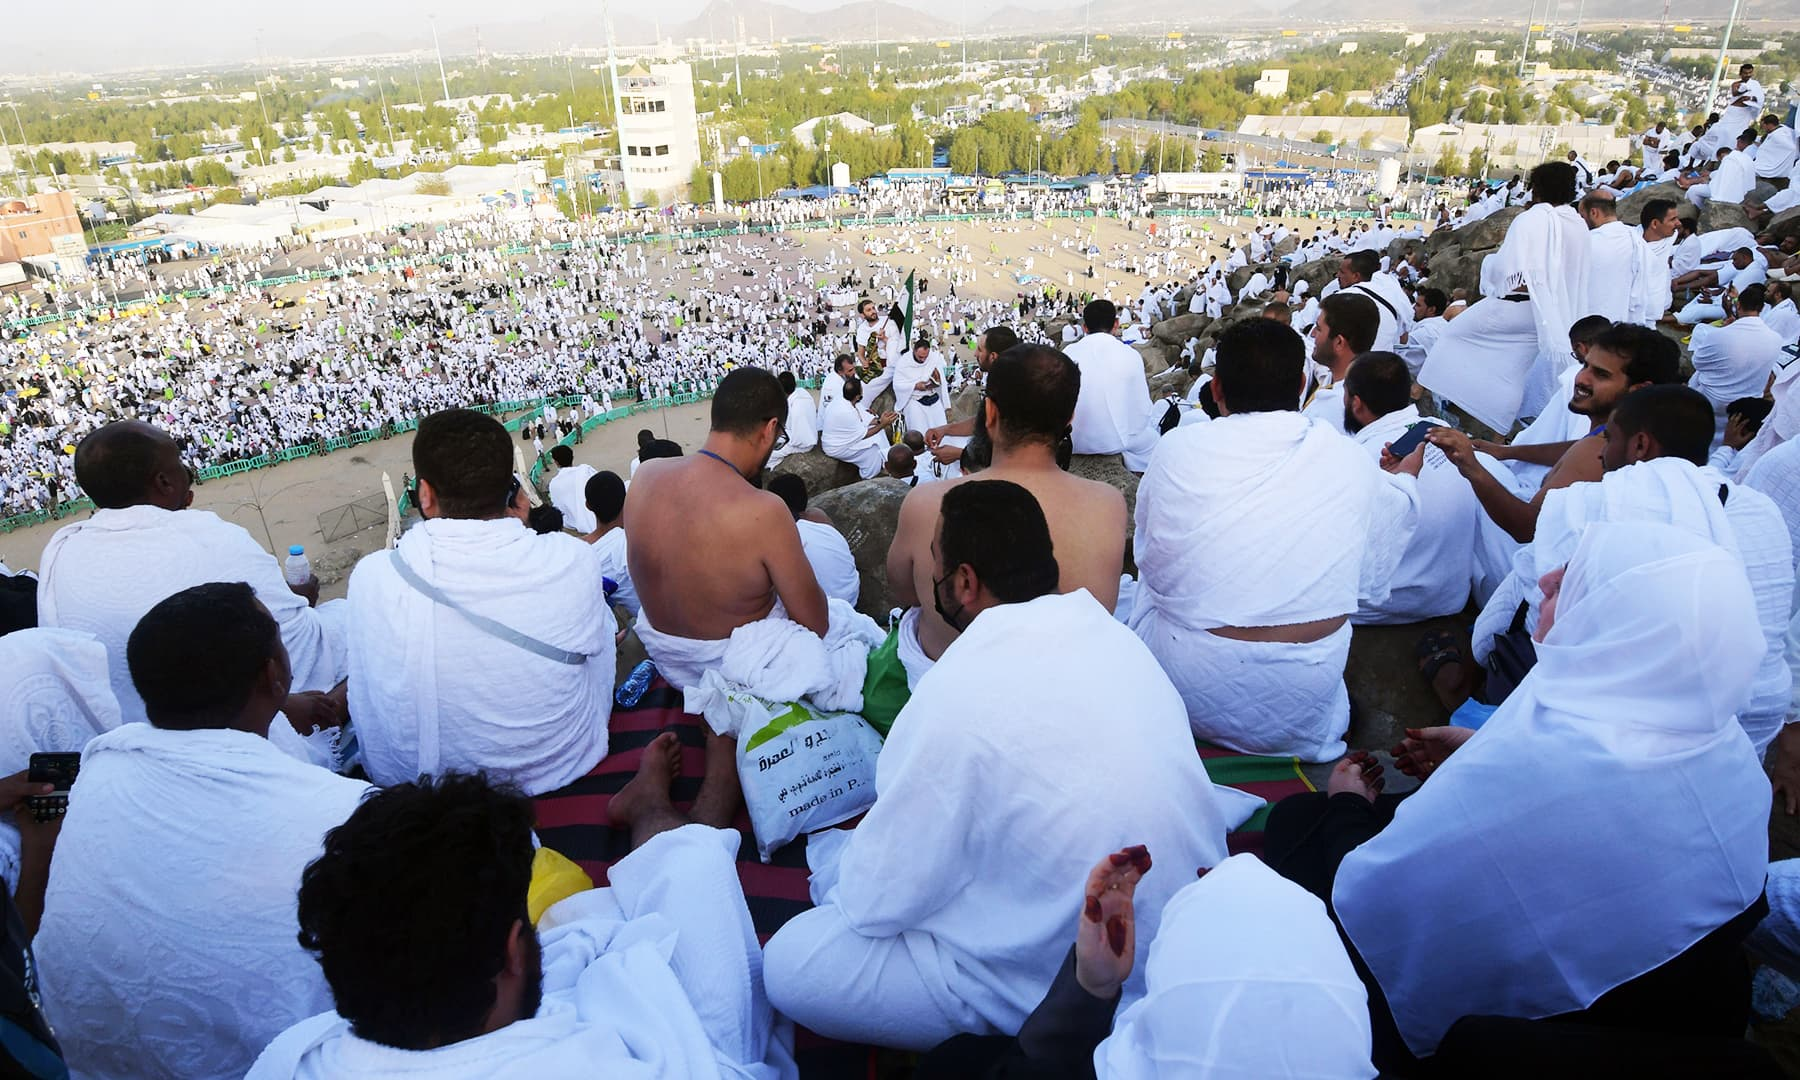 Pilgrims gather on Mount Arafat to listen to the Haj sermon. — AFP